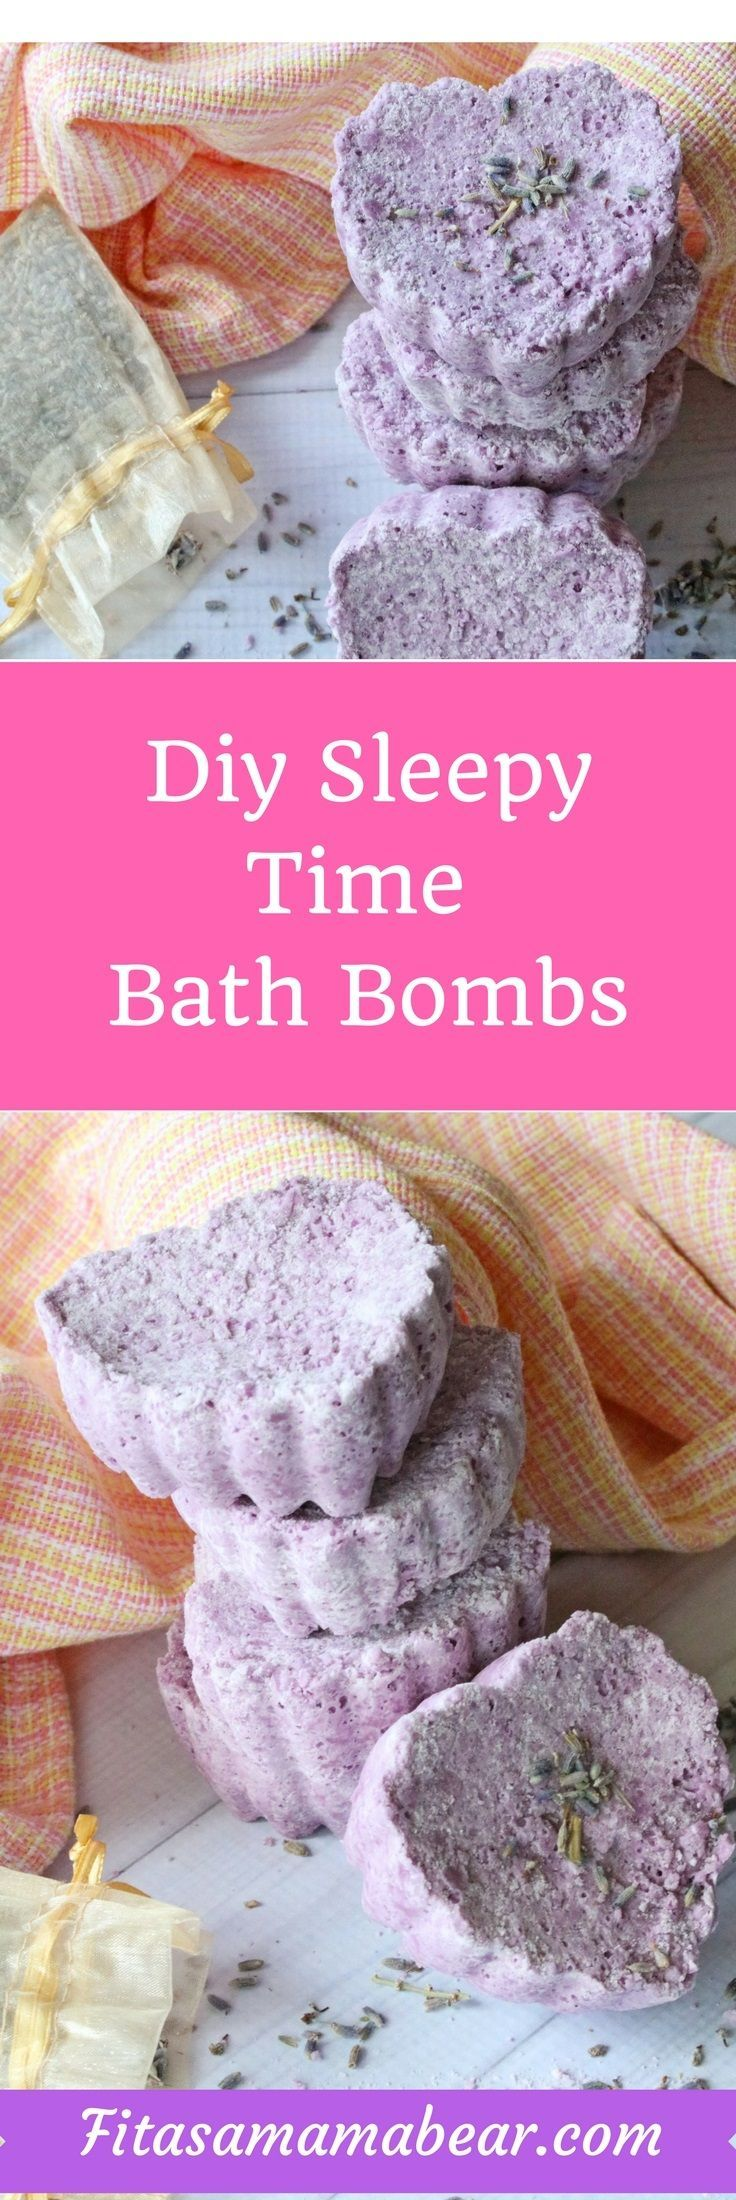 These diy, homemade bath bombs are perfect for relaxing before bed! /skin care & makeup tips / skin care/ makeup tips/chemical free skin care